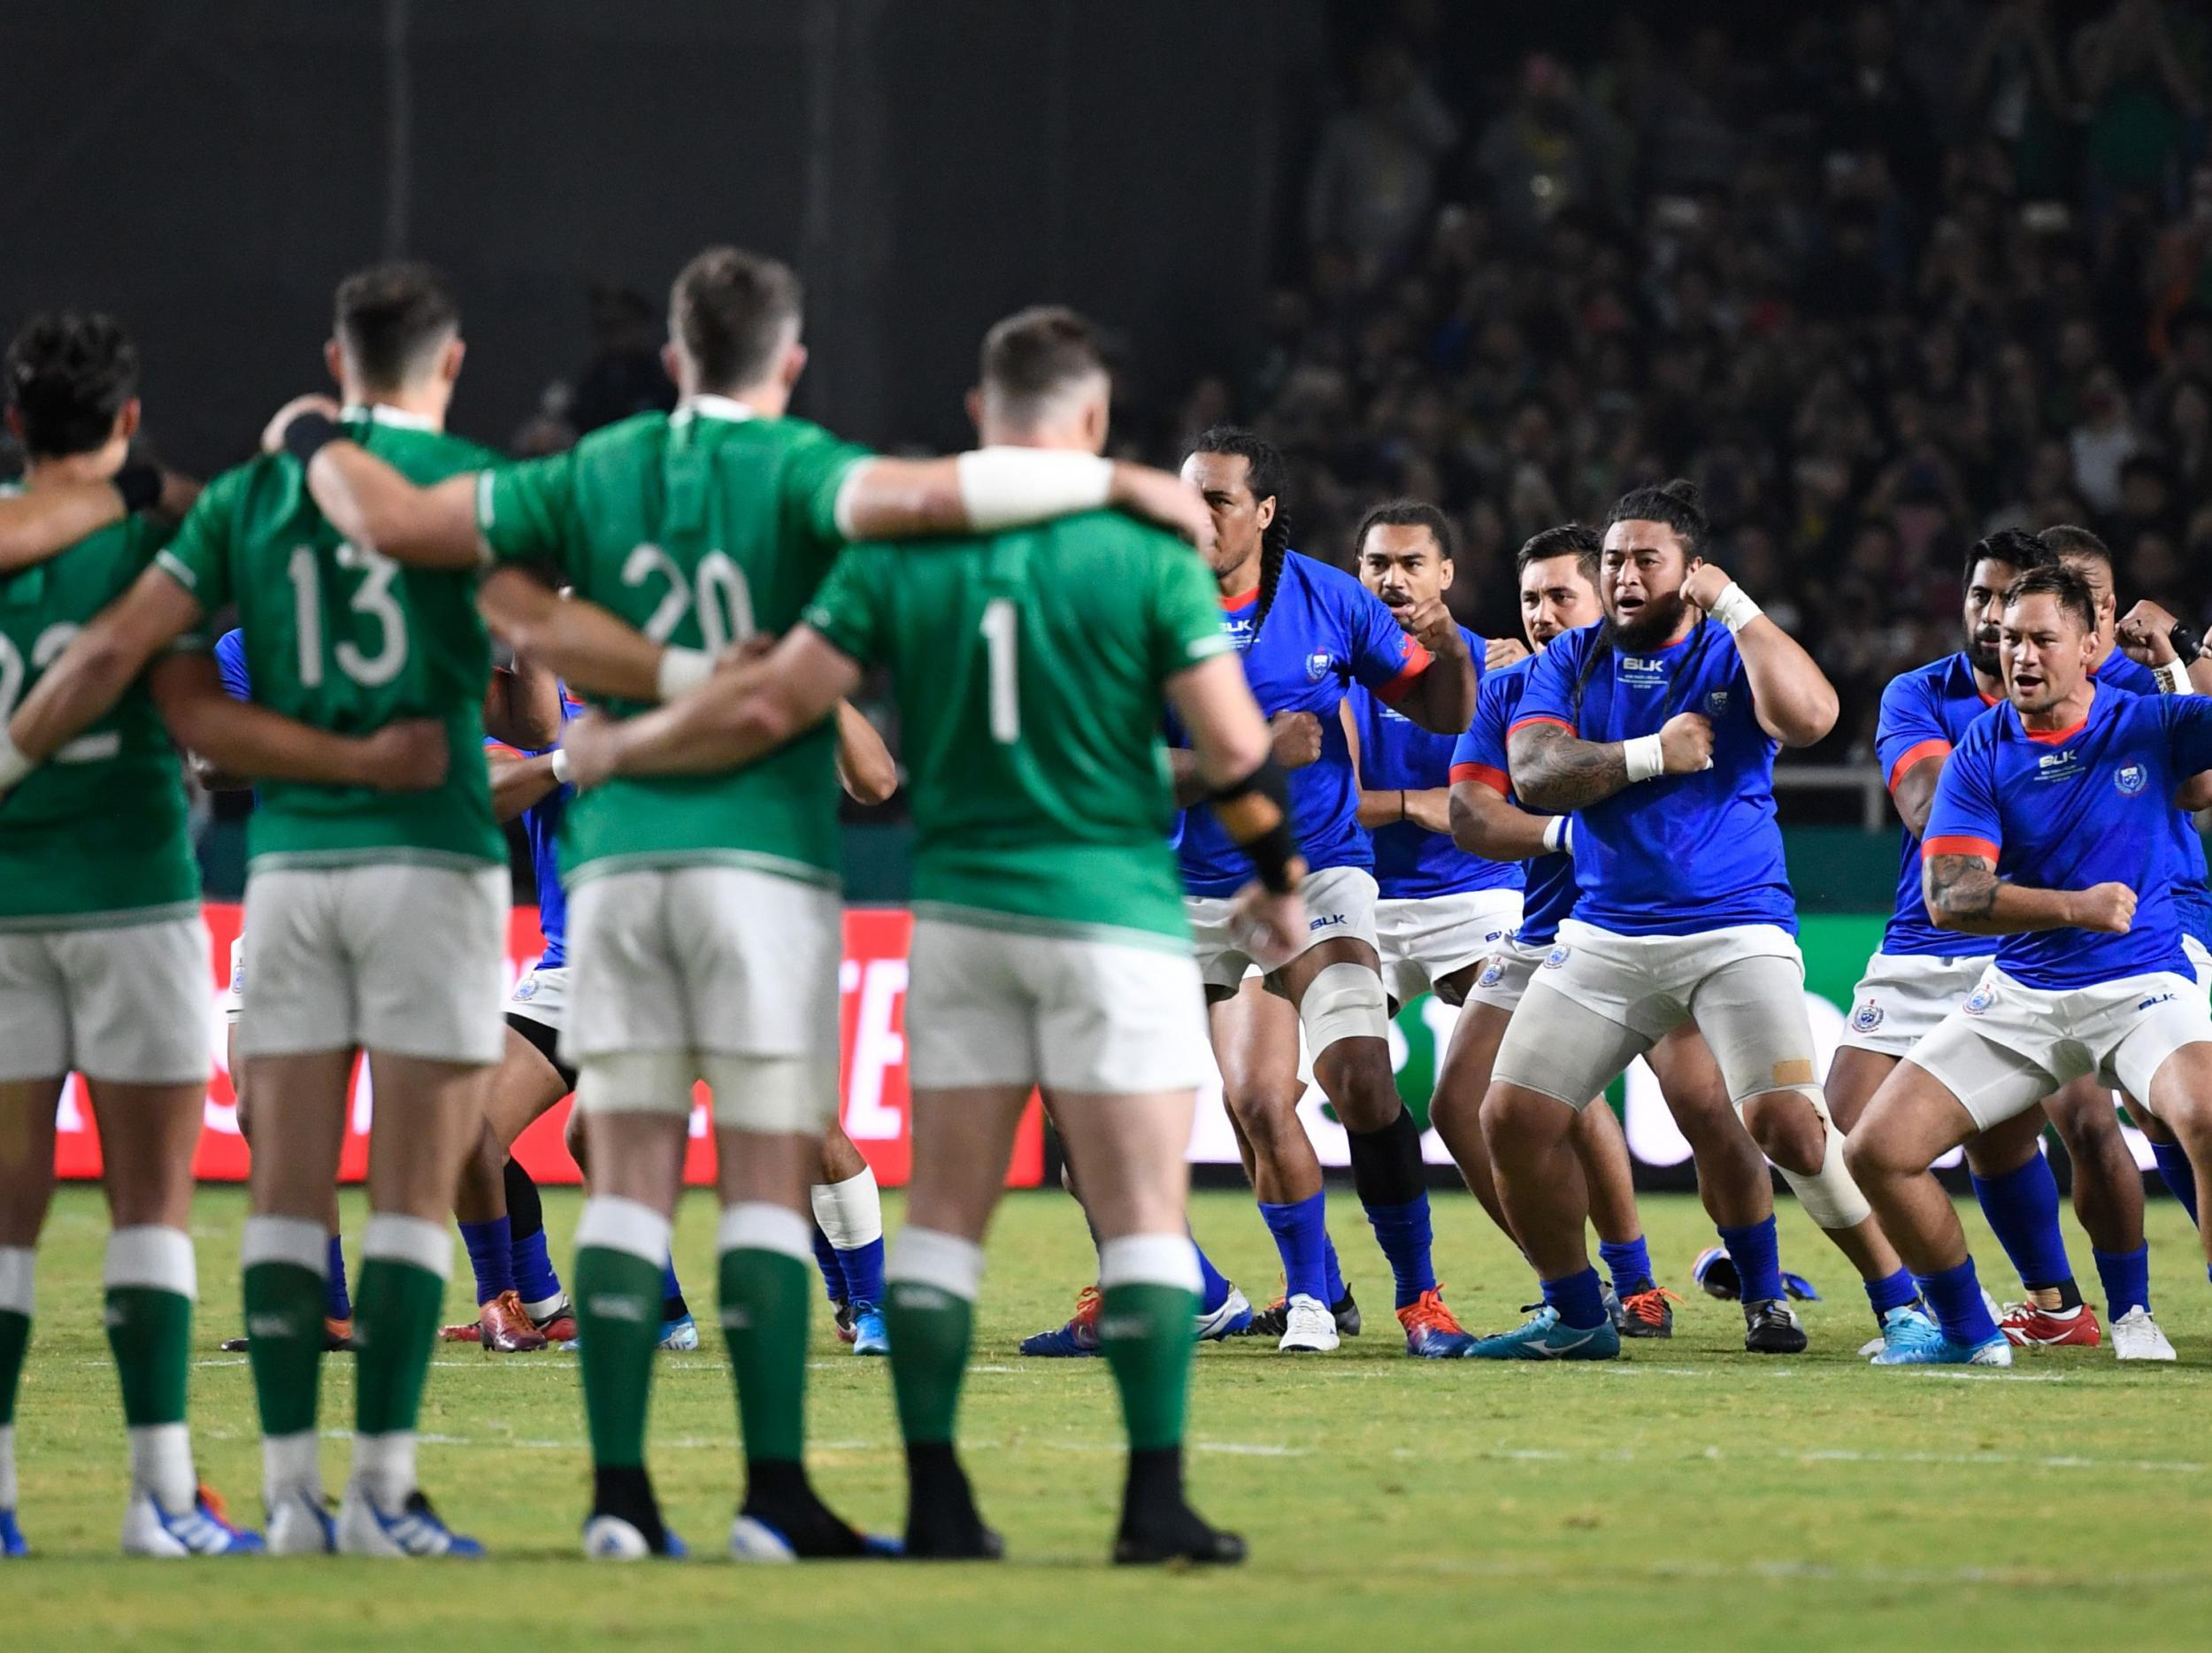 Ireland vs Samoa, Rugby World Cup 2019 LIVE: Result and latest reaction from today's Pool A fixture